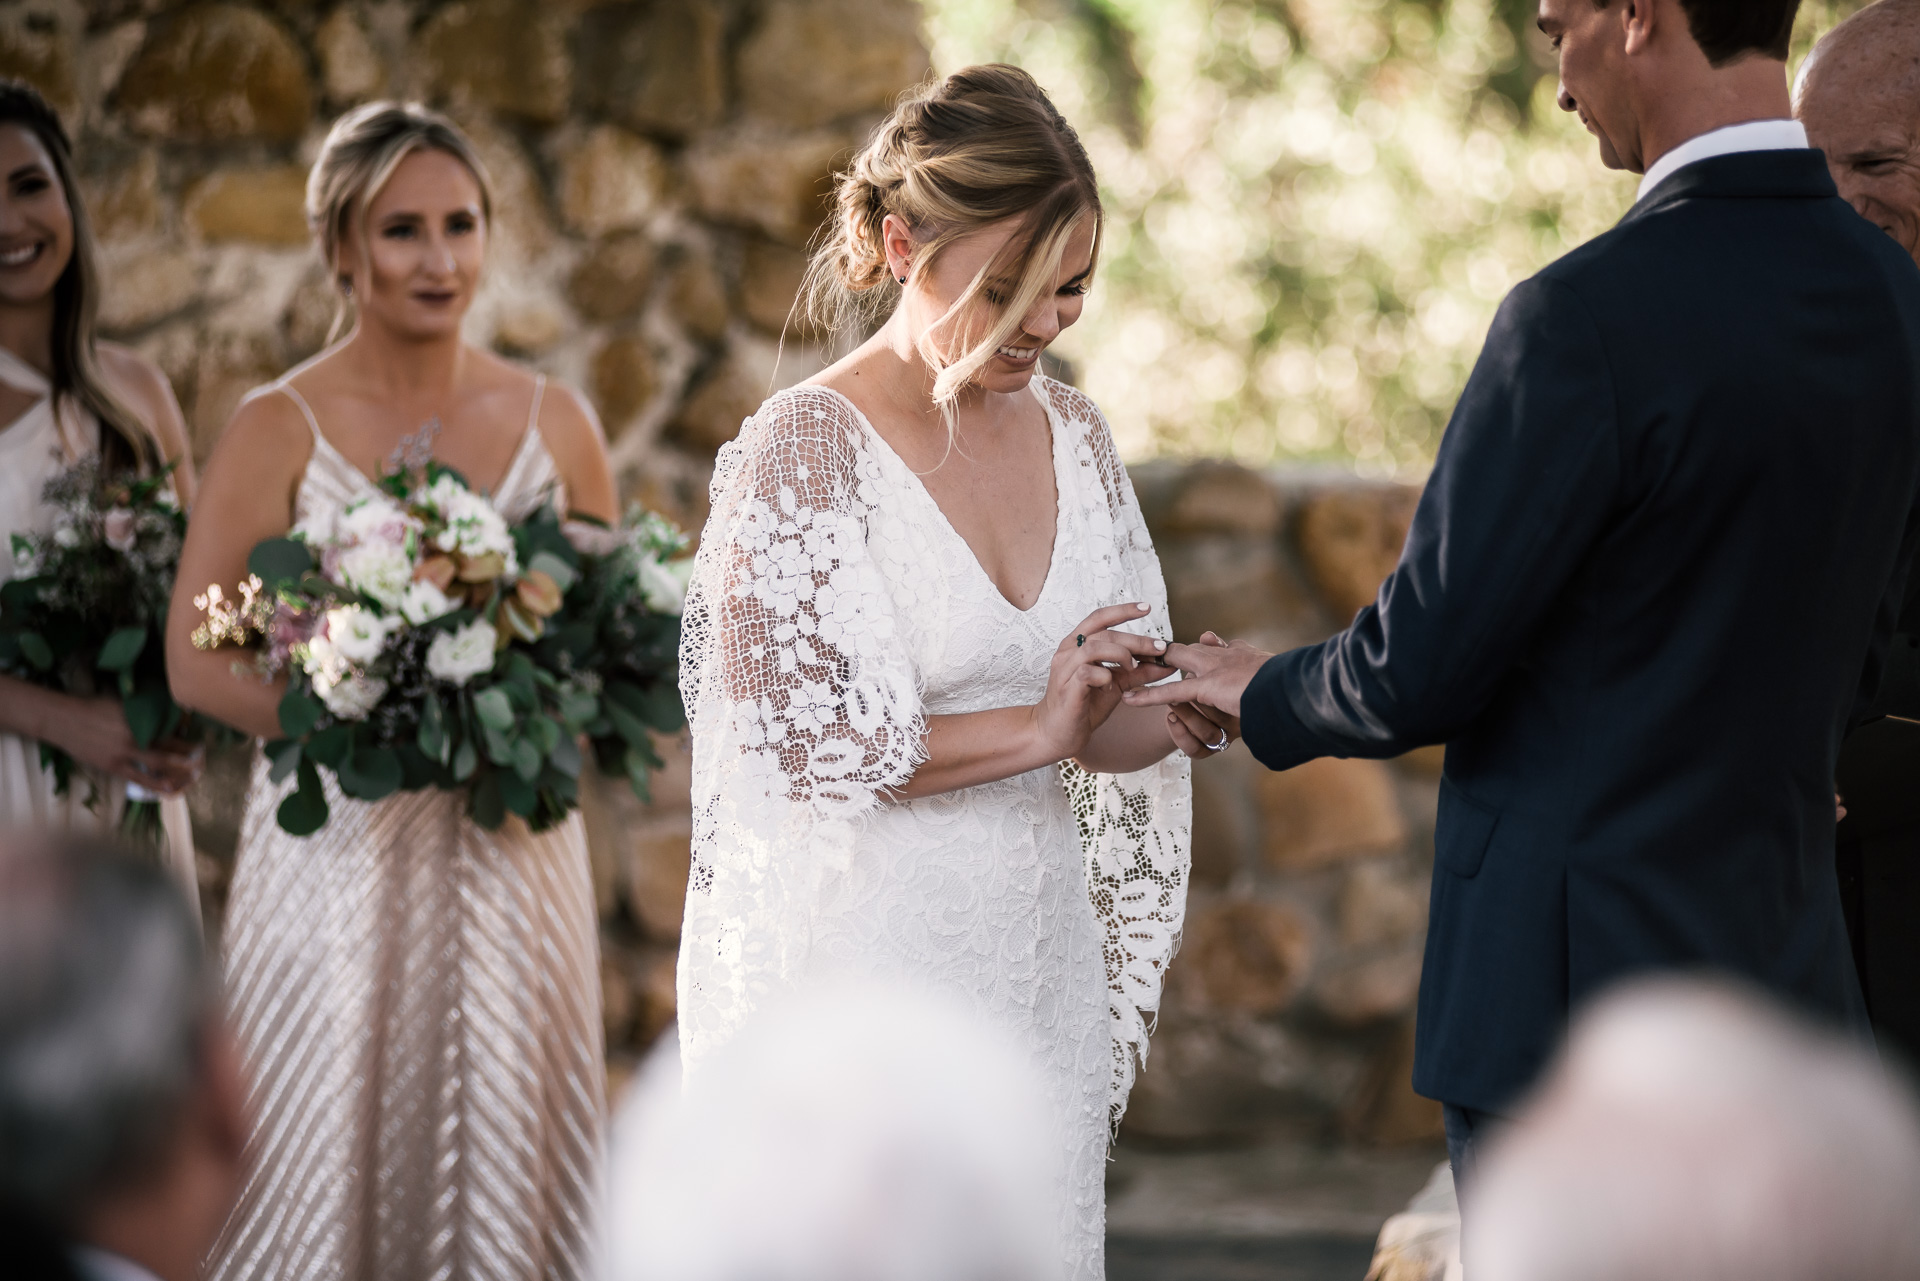 bride puts ring on grooms finger captured by photographer during romantic wedding at the historic Leo Carrillo Ranch in Carlsbad California